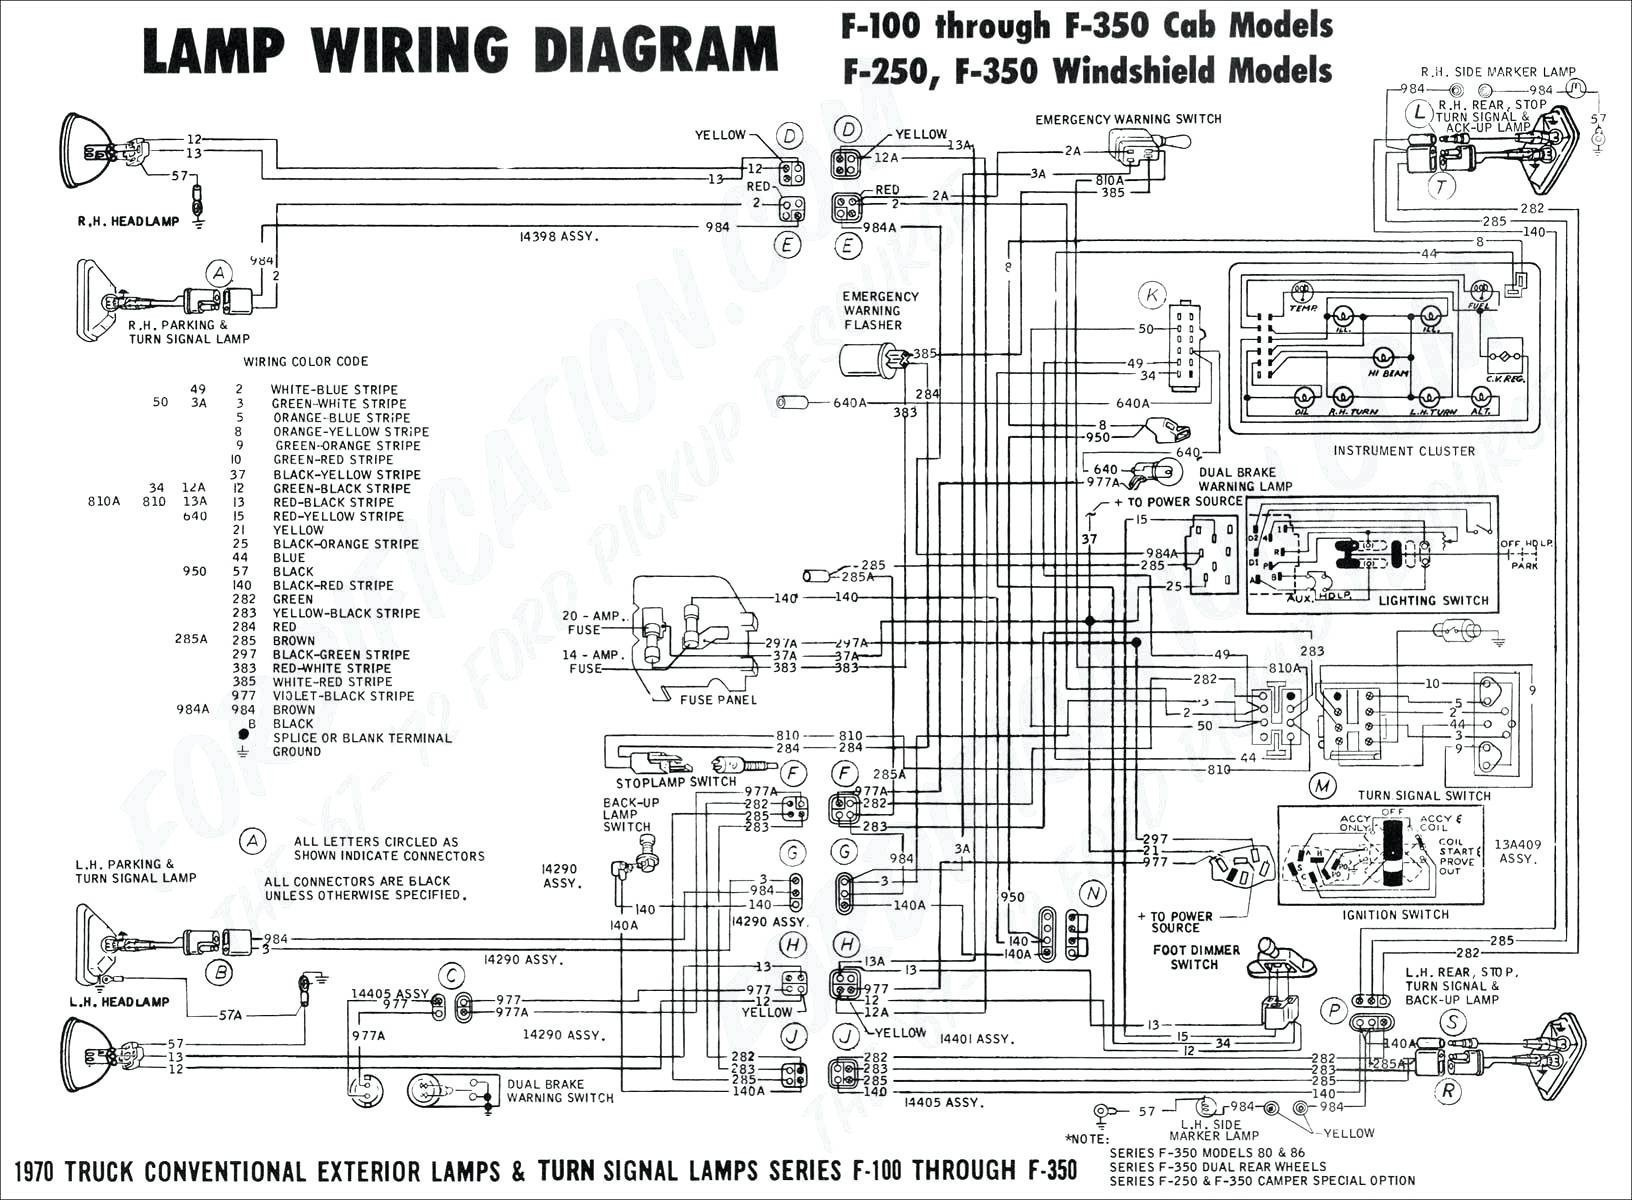 Wiring Diagram for Kohler Engine Engine Wiring Harness Diagram E 450 Wiring Diagram Options Of Wiring Diagram for Kohler Engine